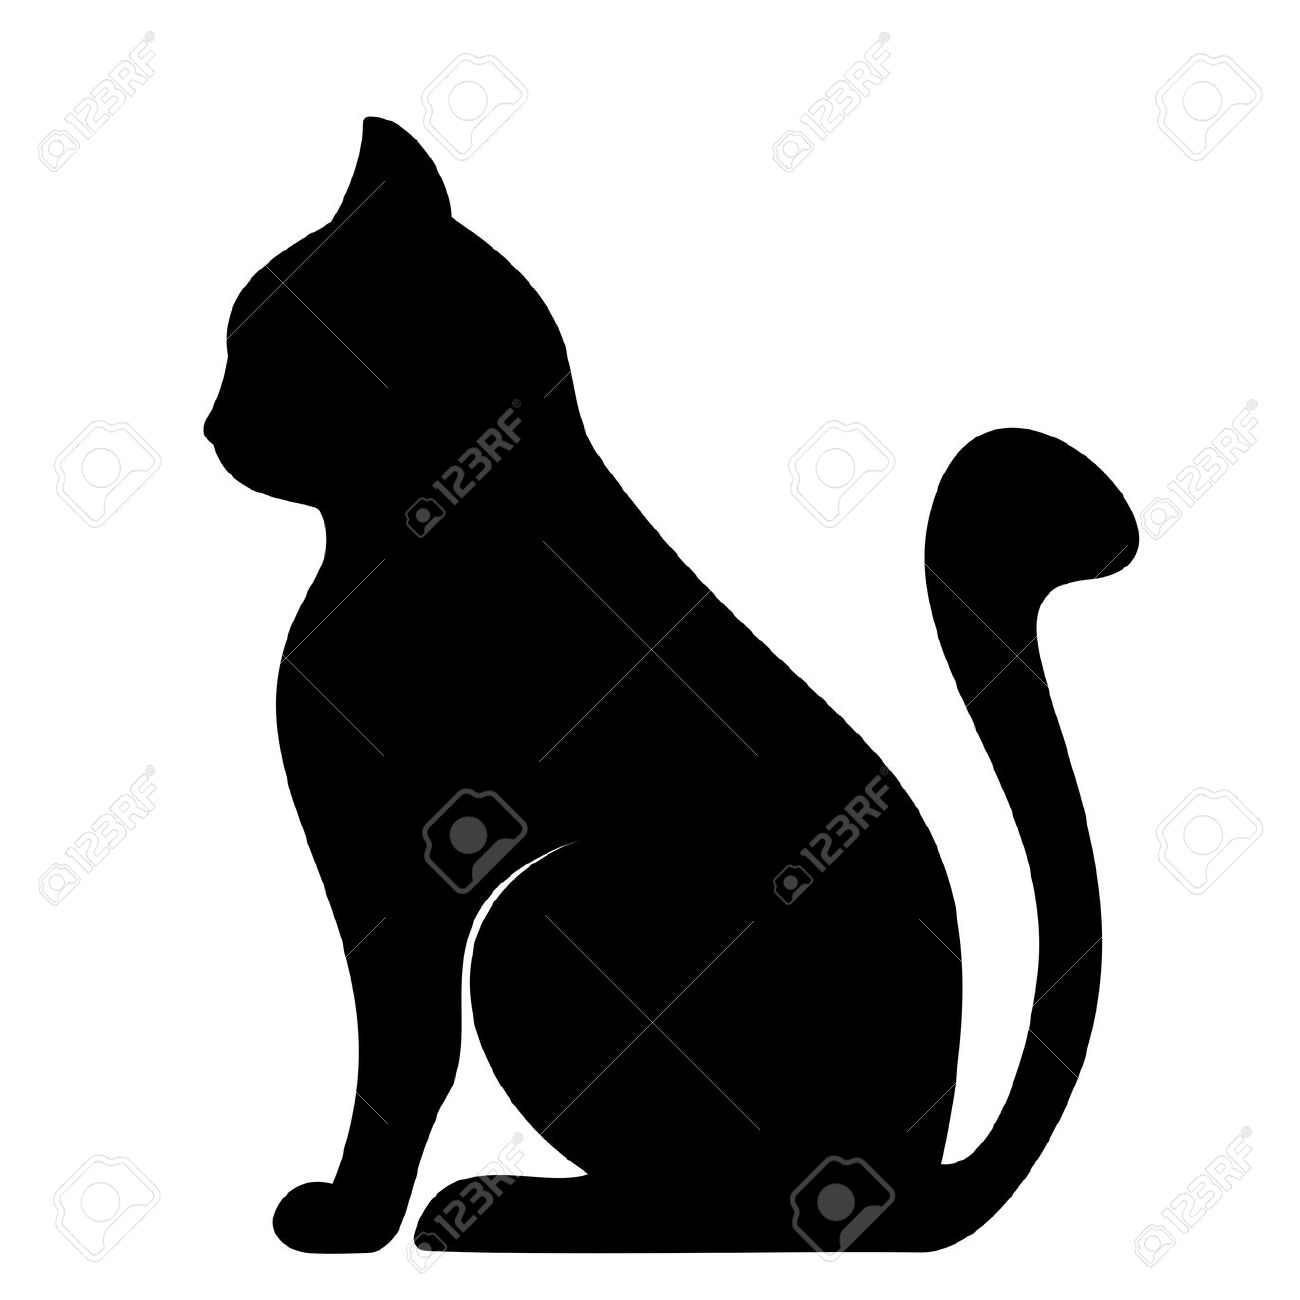 29,970 Cat Silhouette Stock Vector Illustration And Royalty Free.